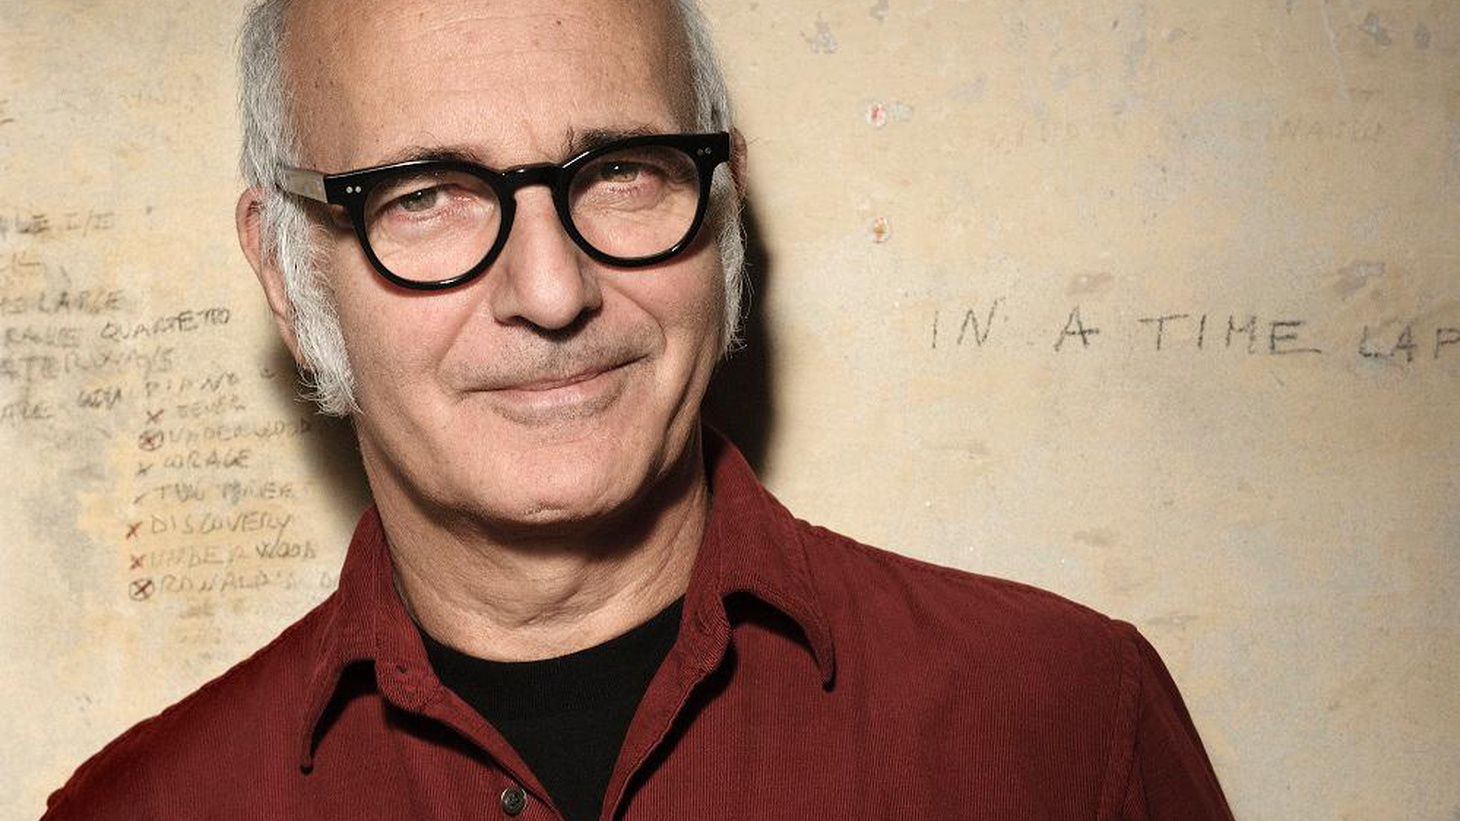 Italian classical composer Ludovico Einaudi's recent album, In a Time Lapse, reflects on the work of Henry David Thoreau.